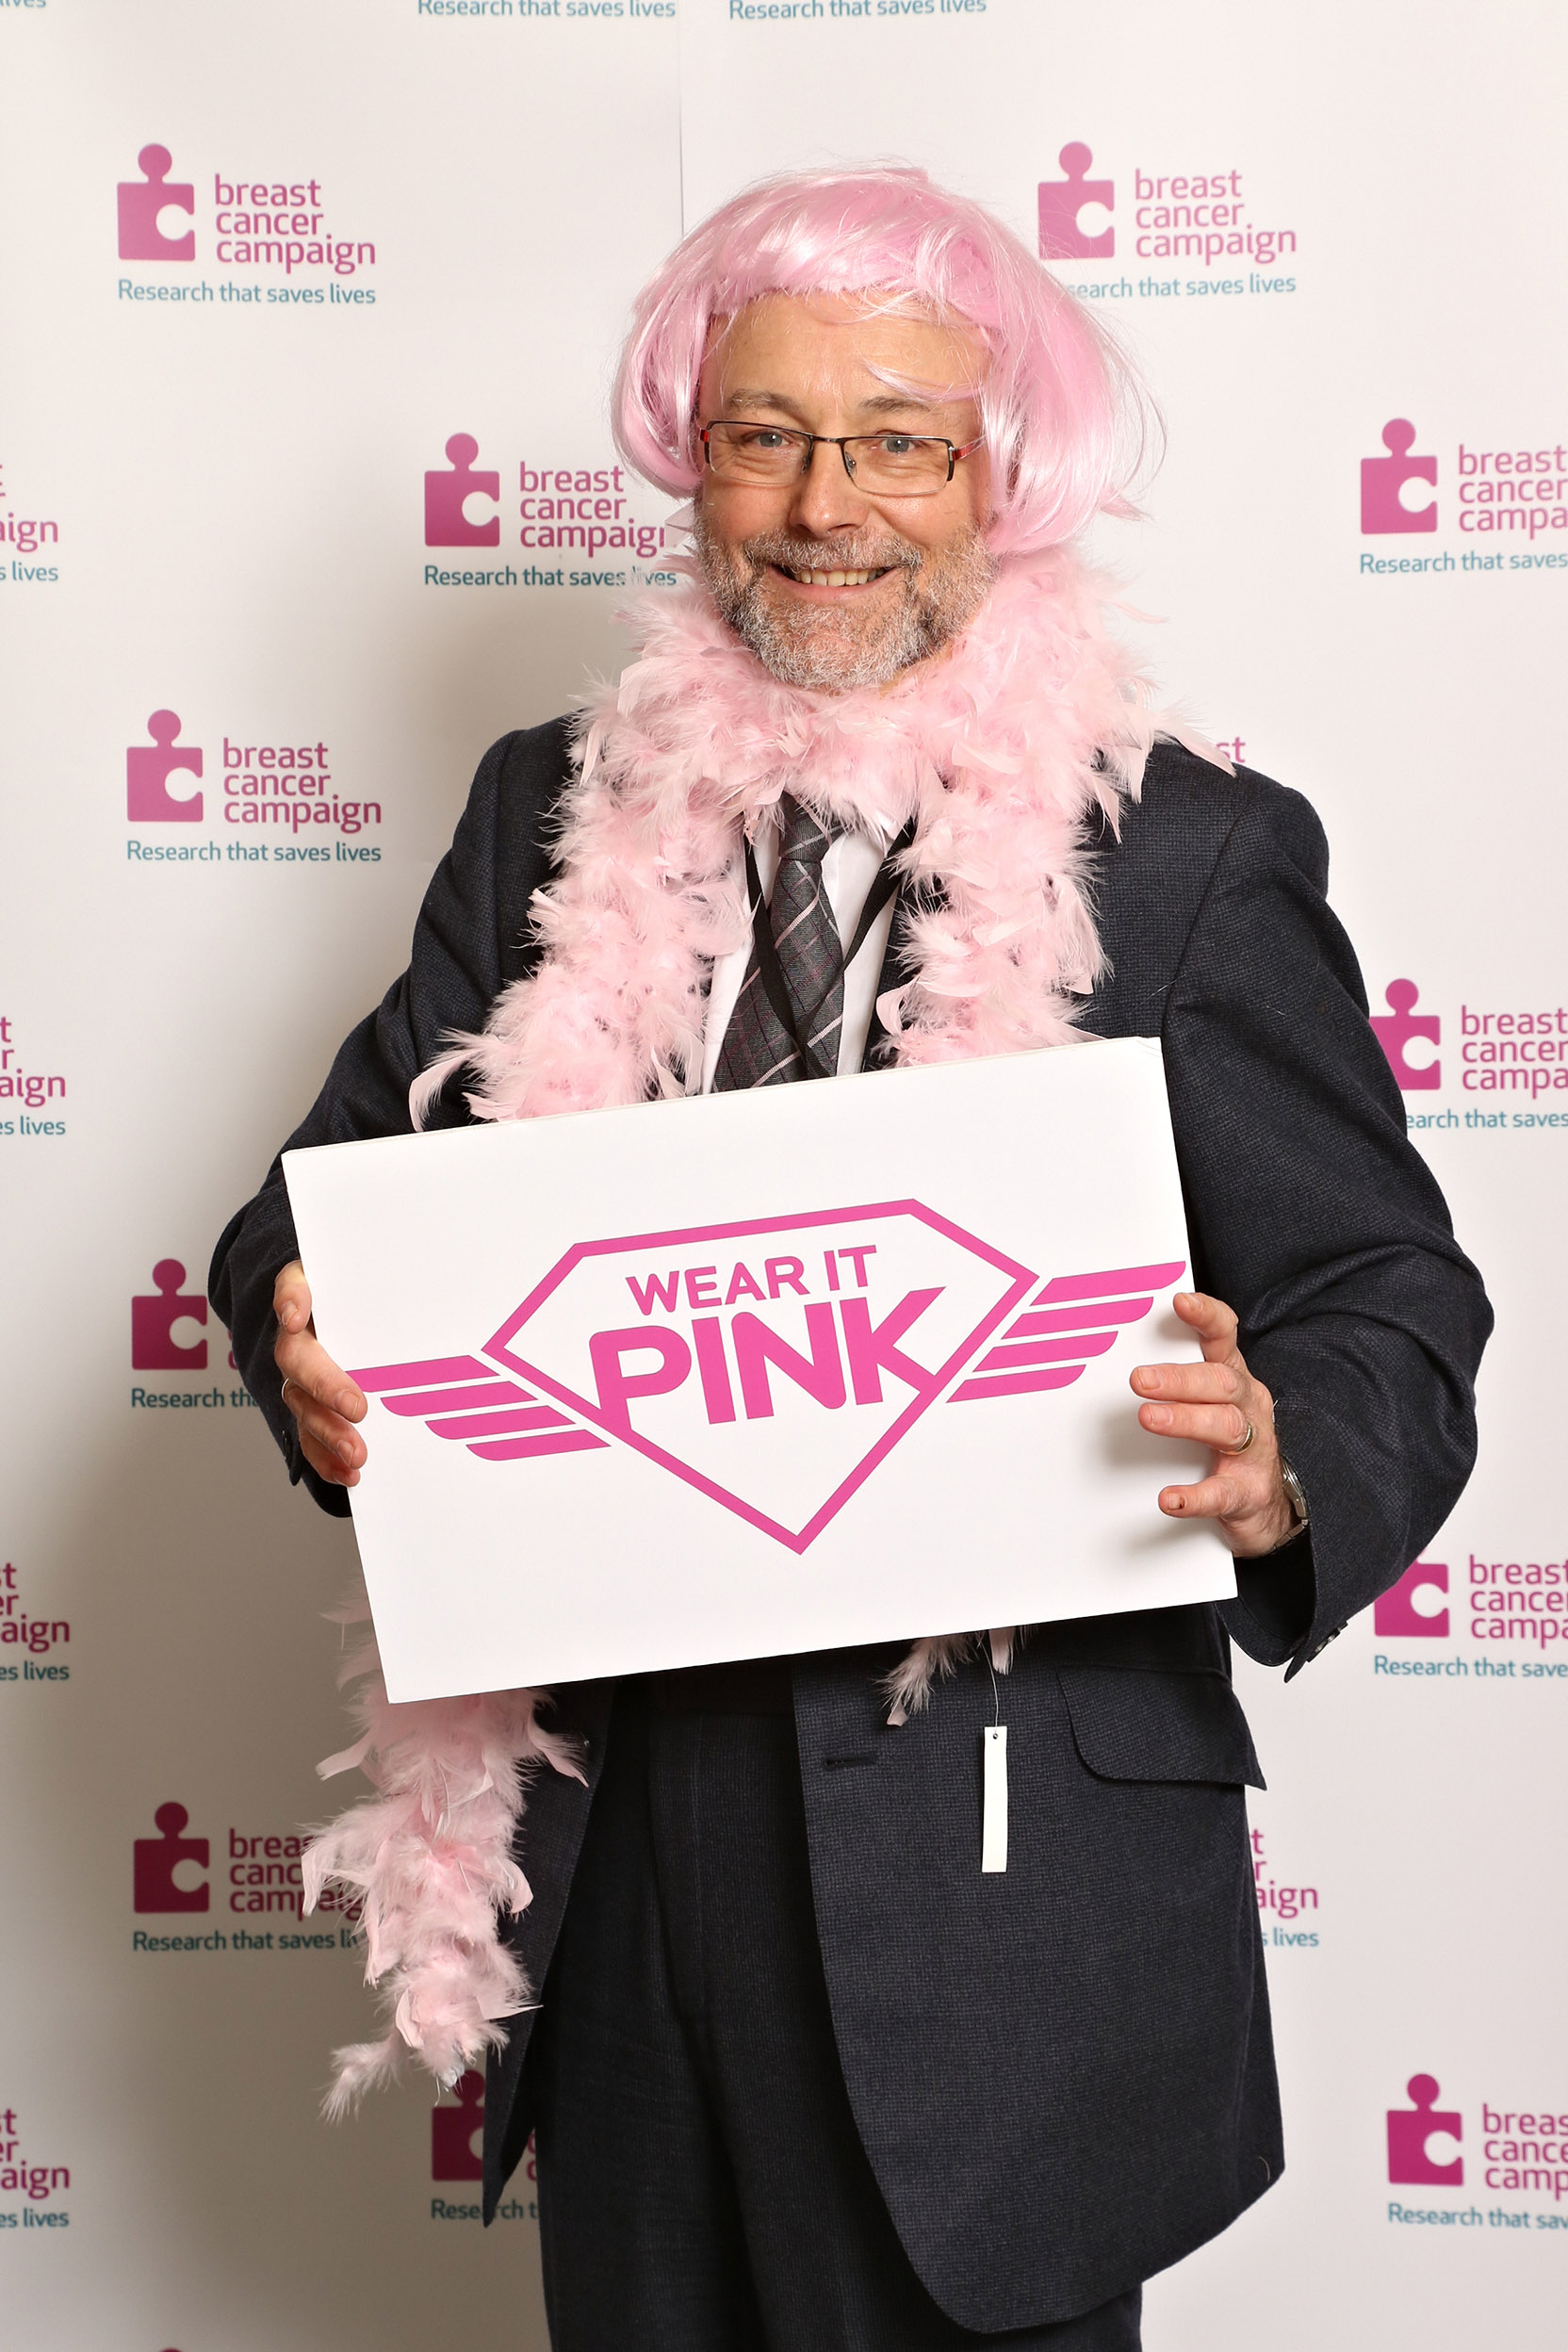 Alex joins the fight against breast cancer